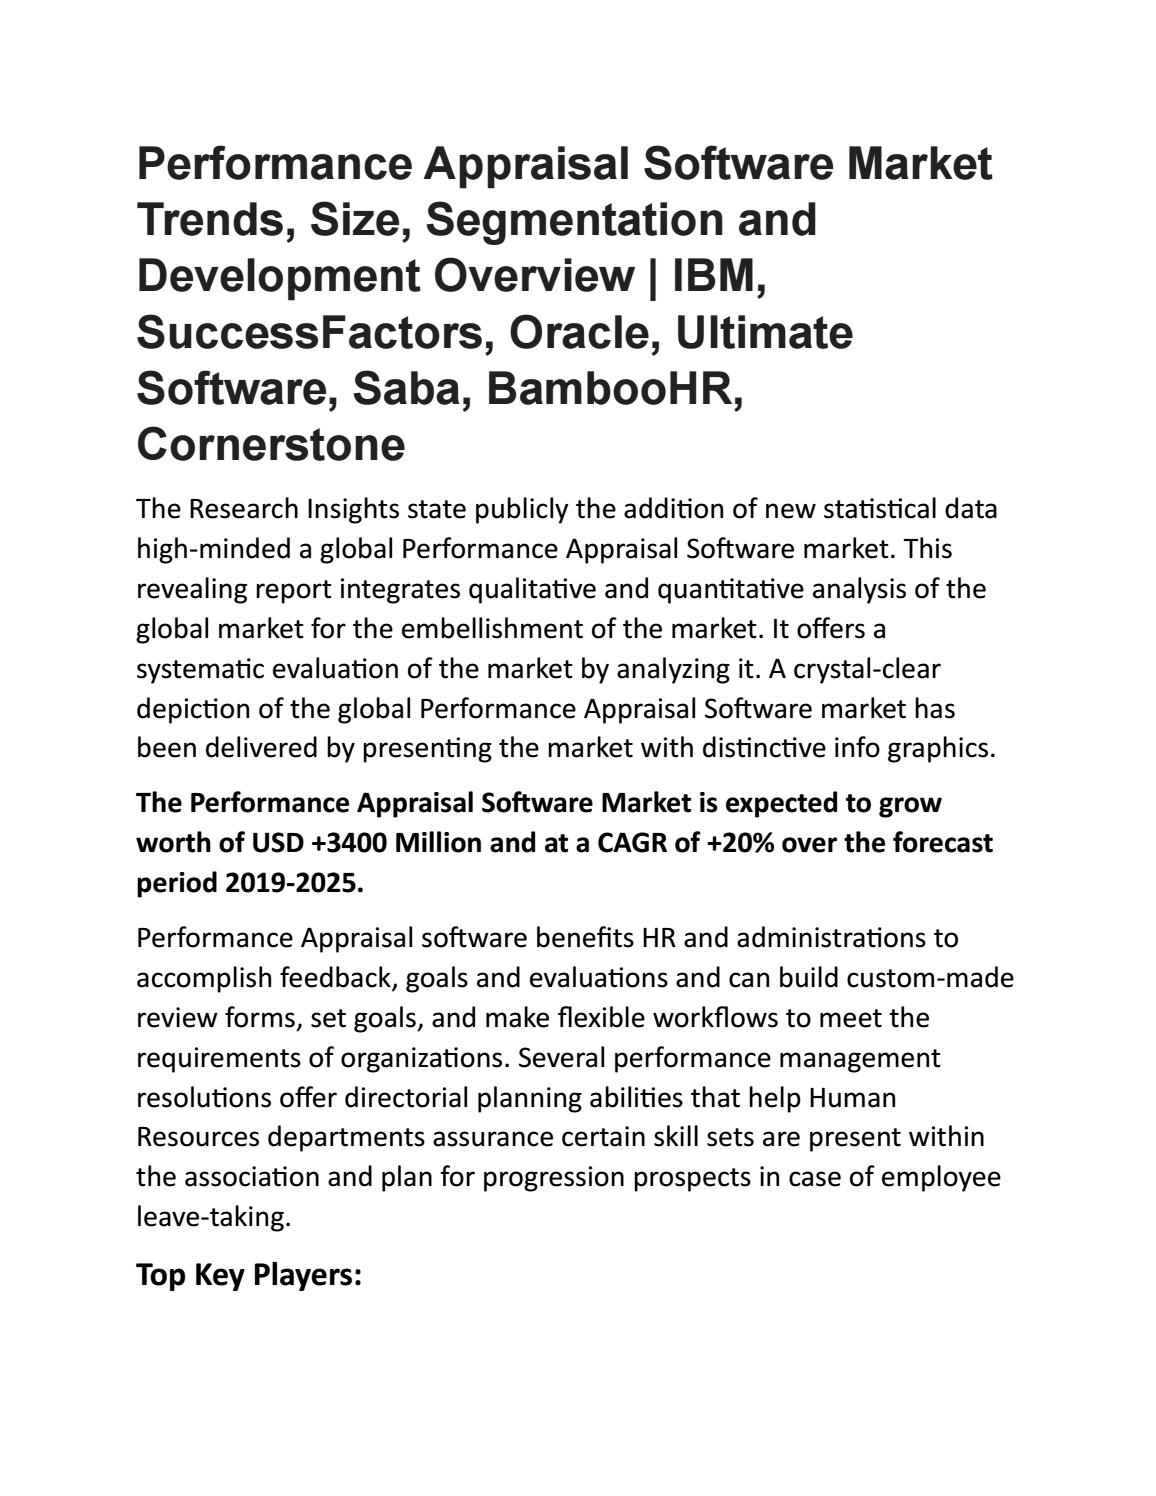 Performance Appraisal Software Market by researchinsights1